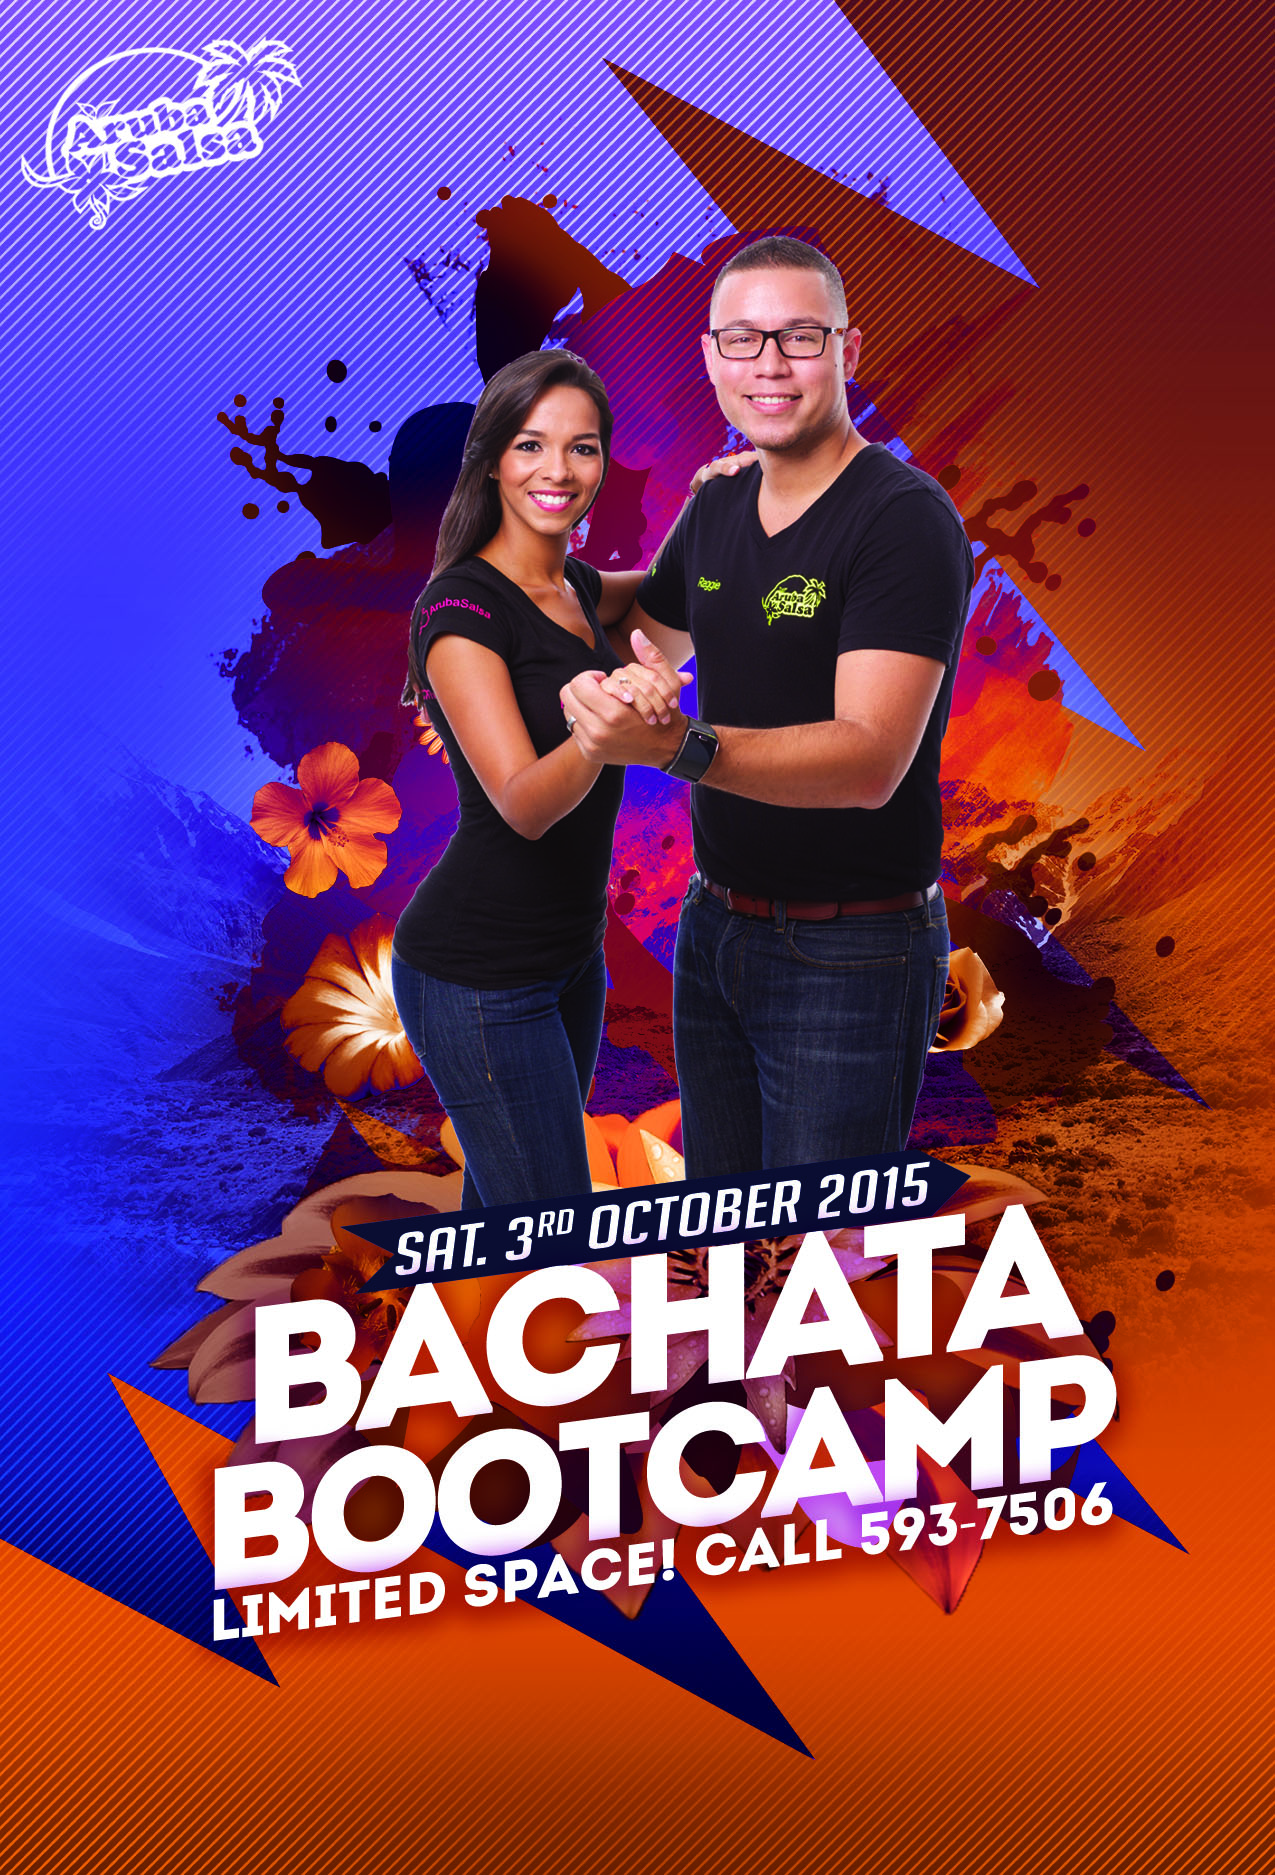 Bachata Bootcamp Oct 2015.jpg